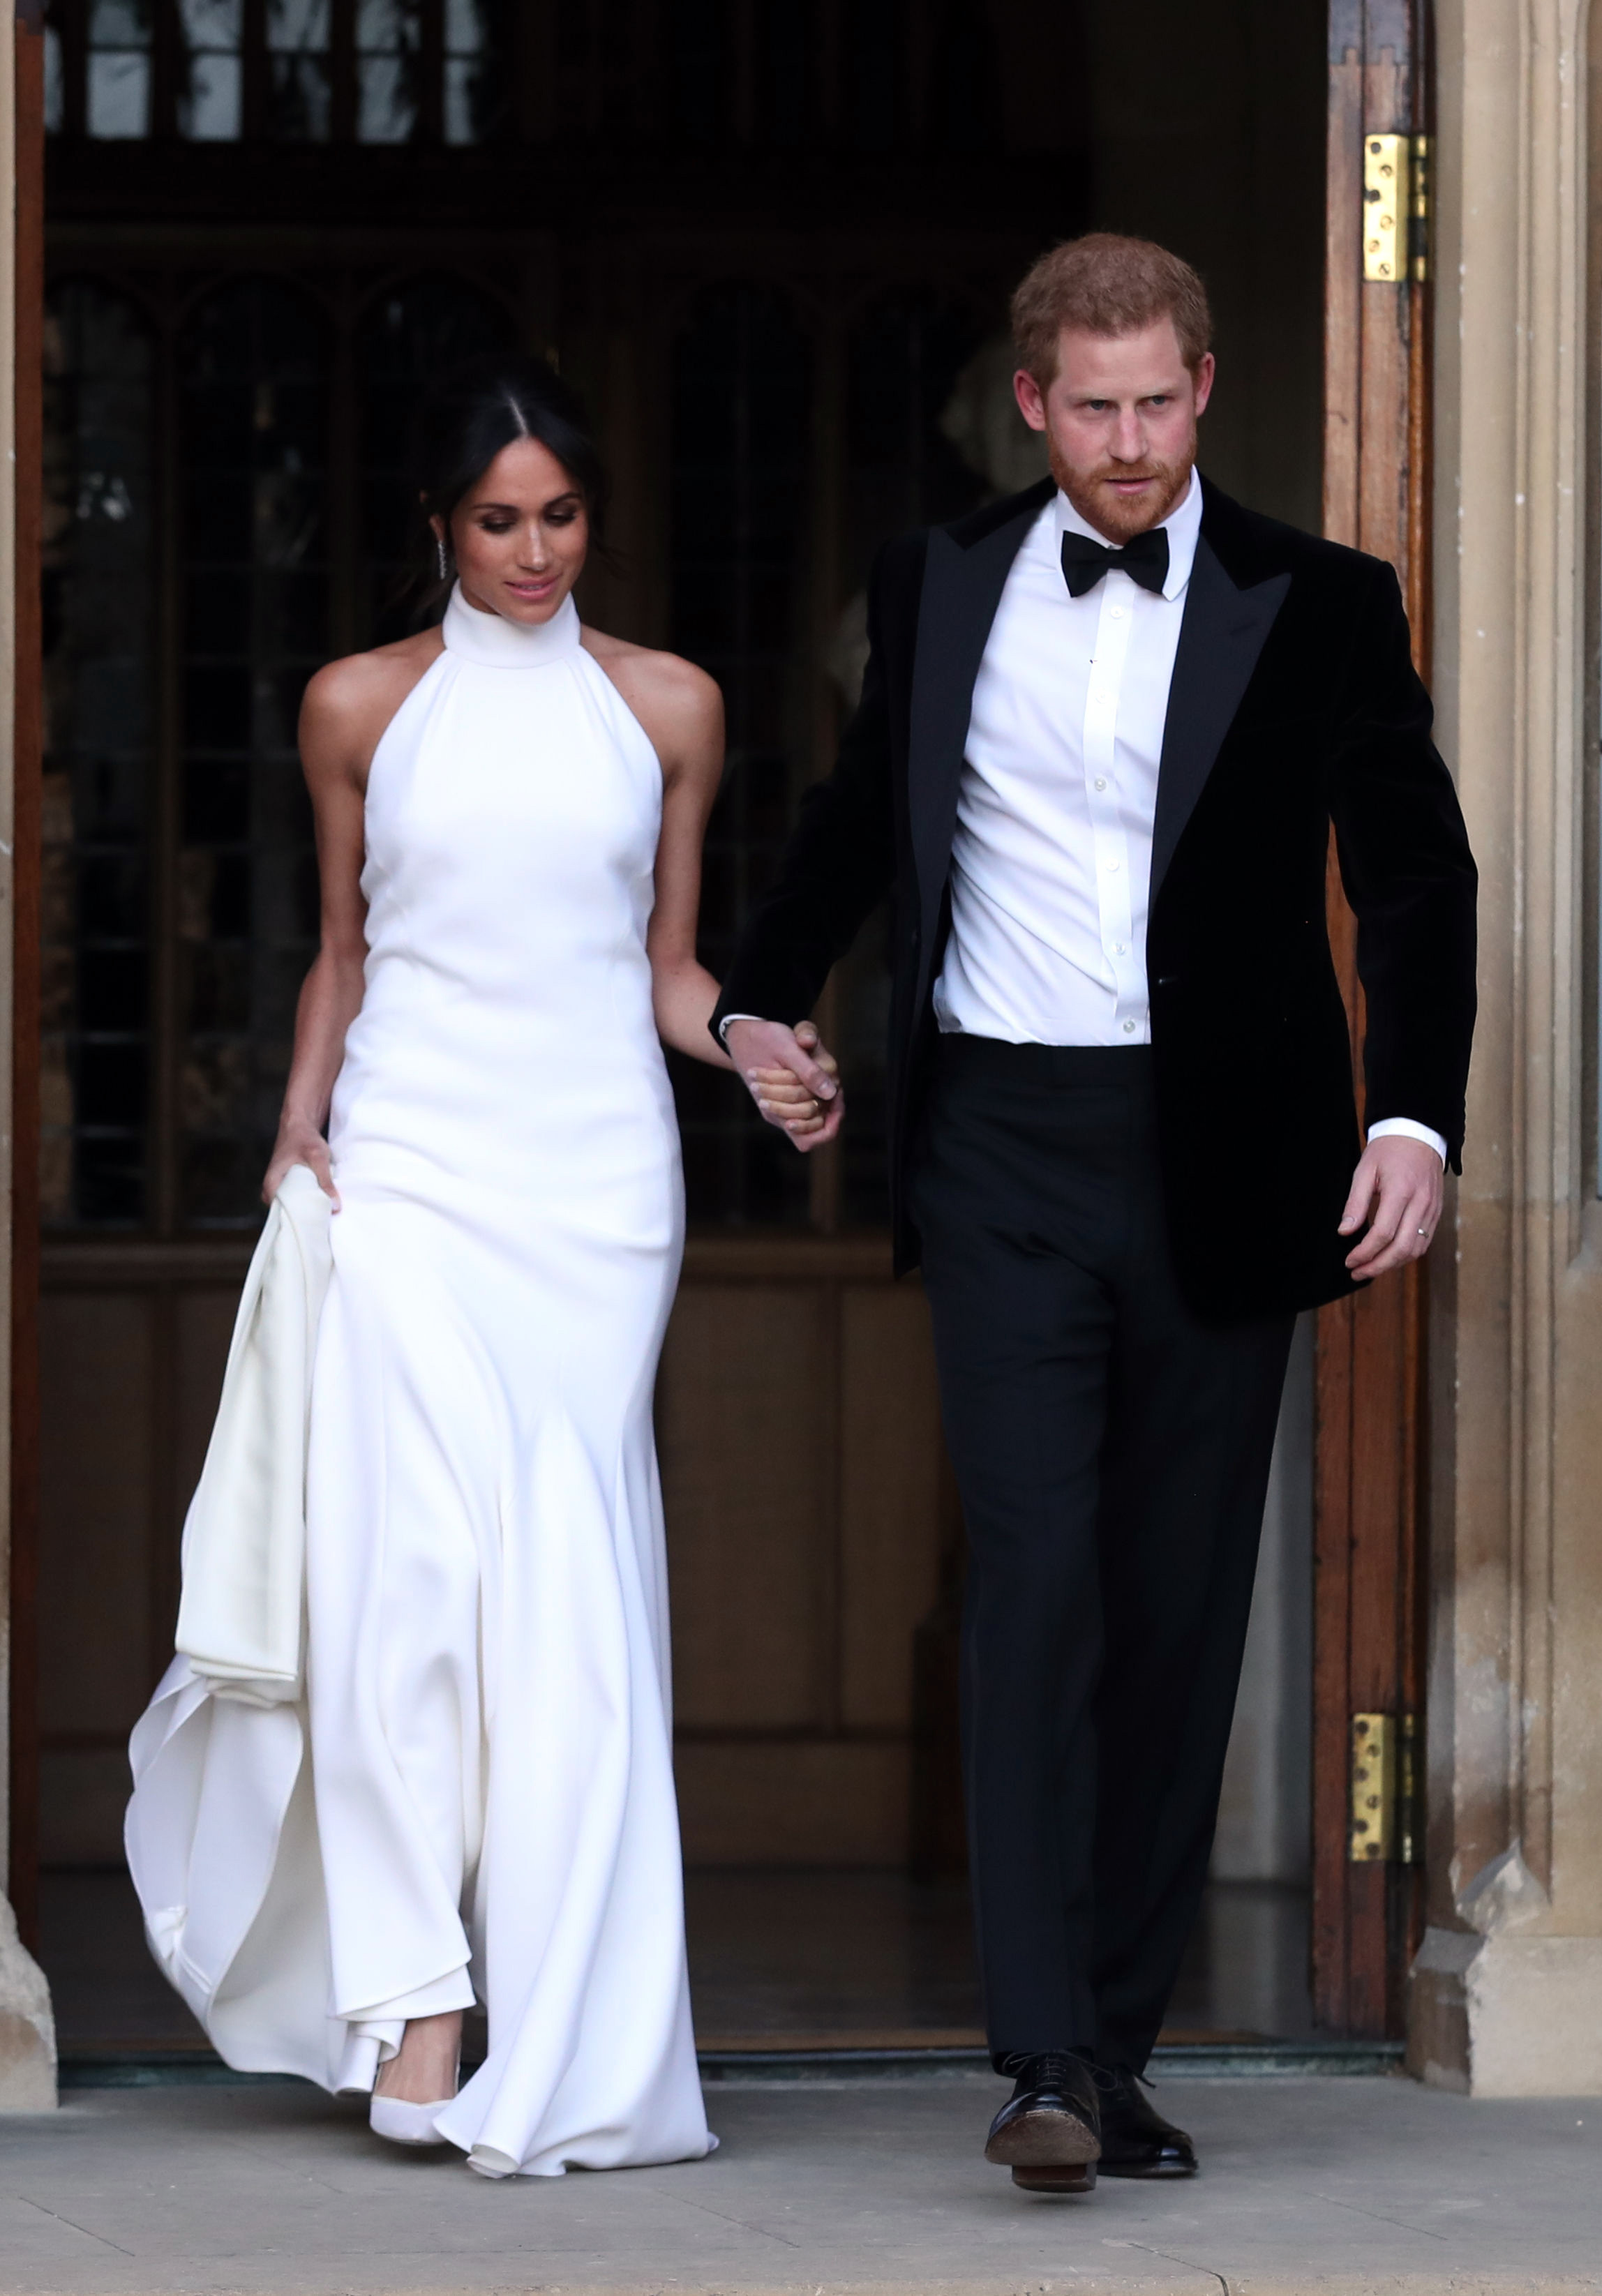 Meghan Markle's Stella McCartney reception dress.